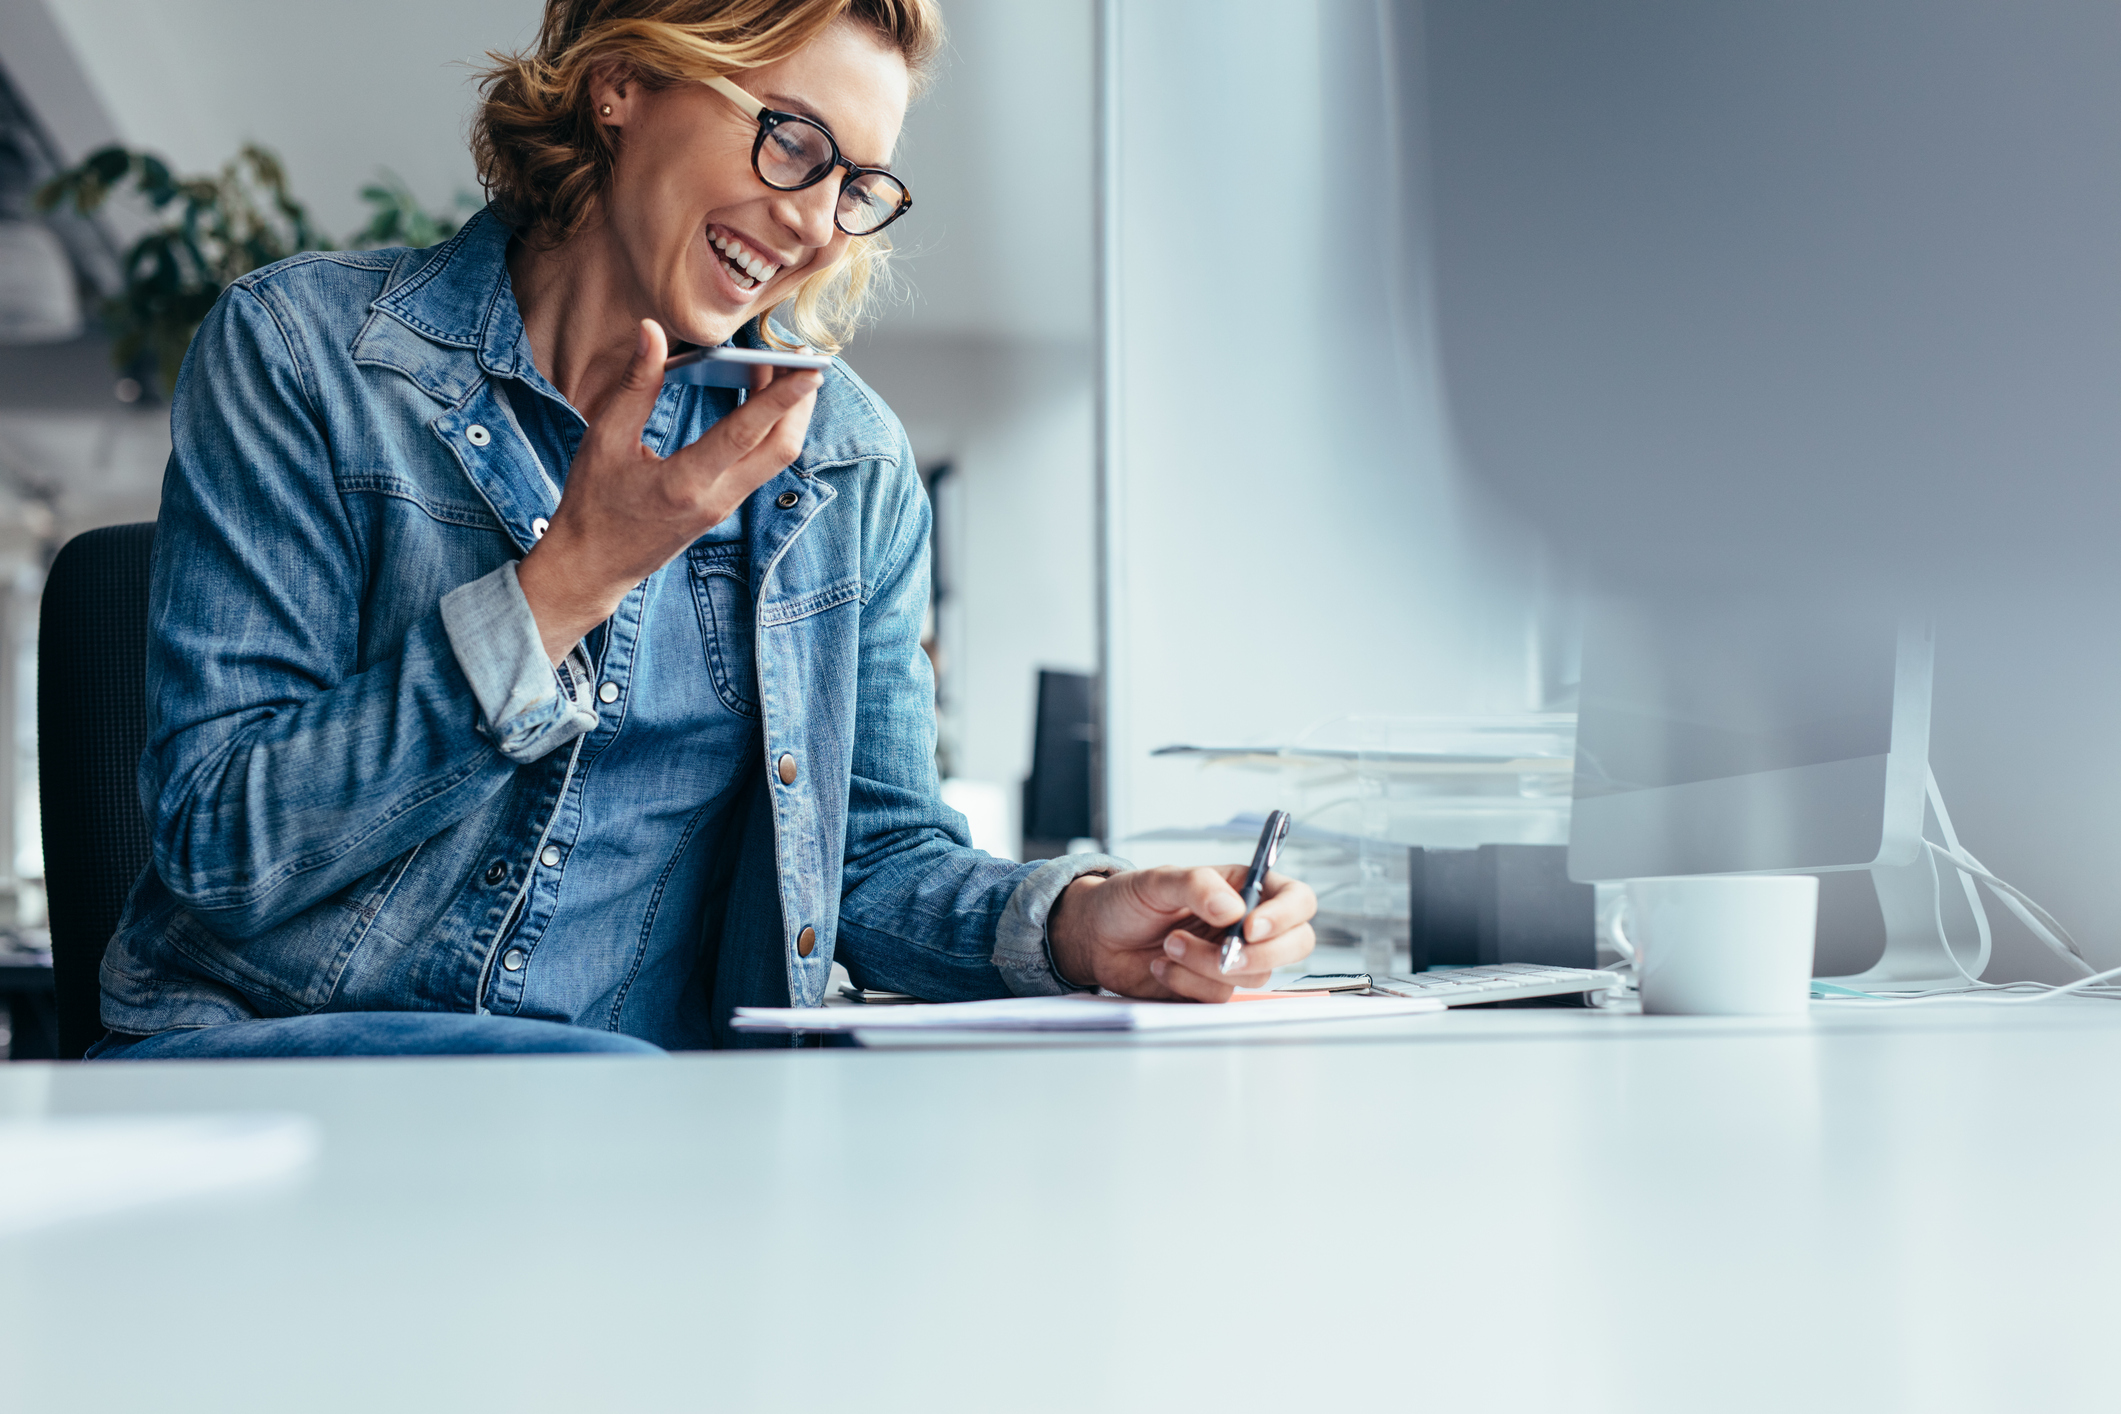 Woman in an office, smiling, on the phone